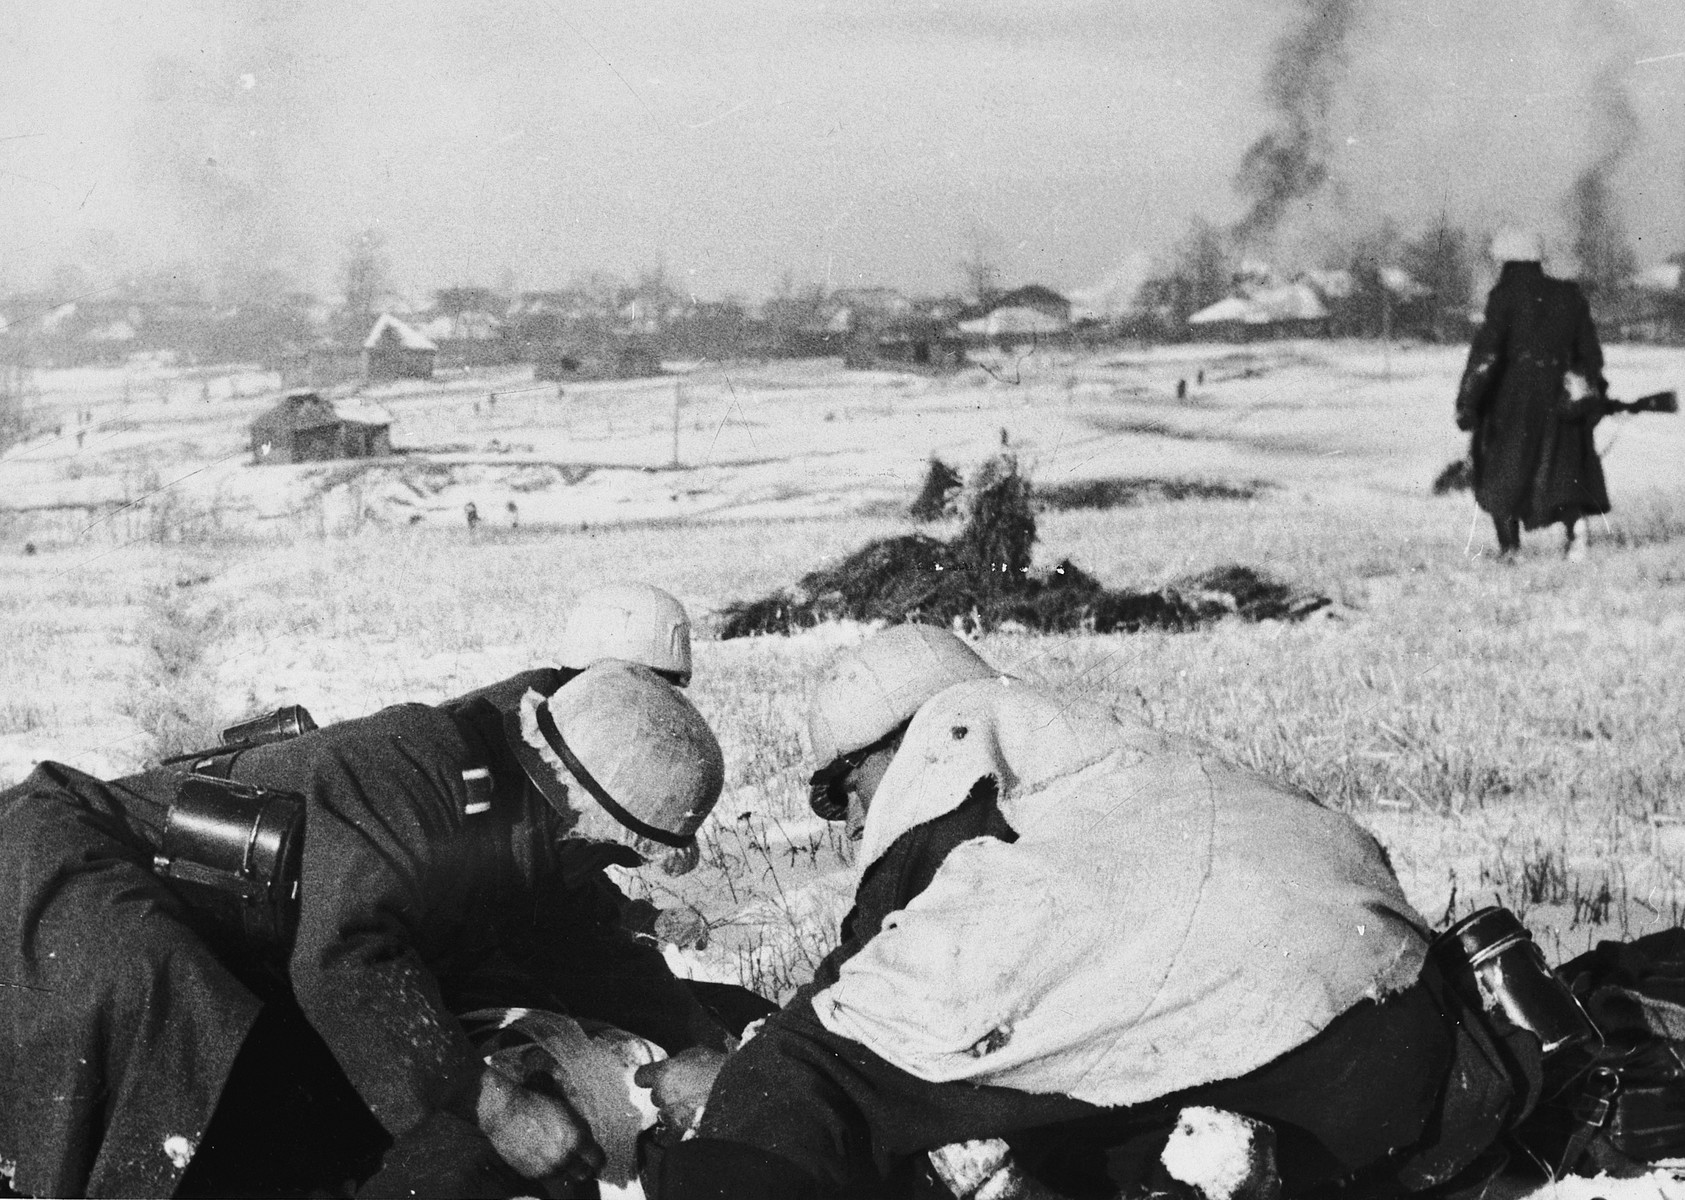 Three German soldiers inspect a document in a snowy field while another views a burning village in the distance [probably in the Soviet Union].